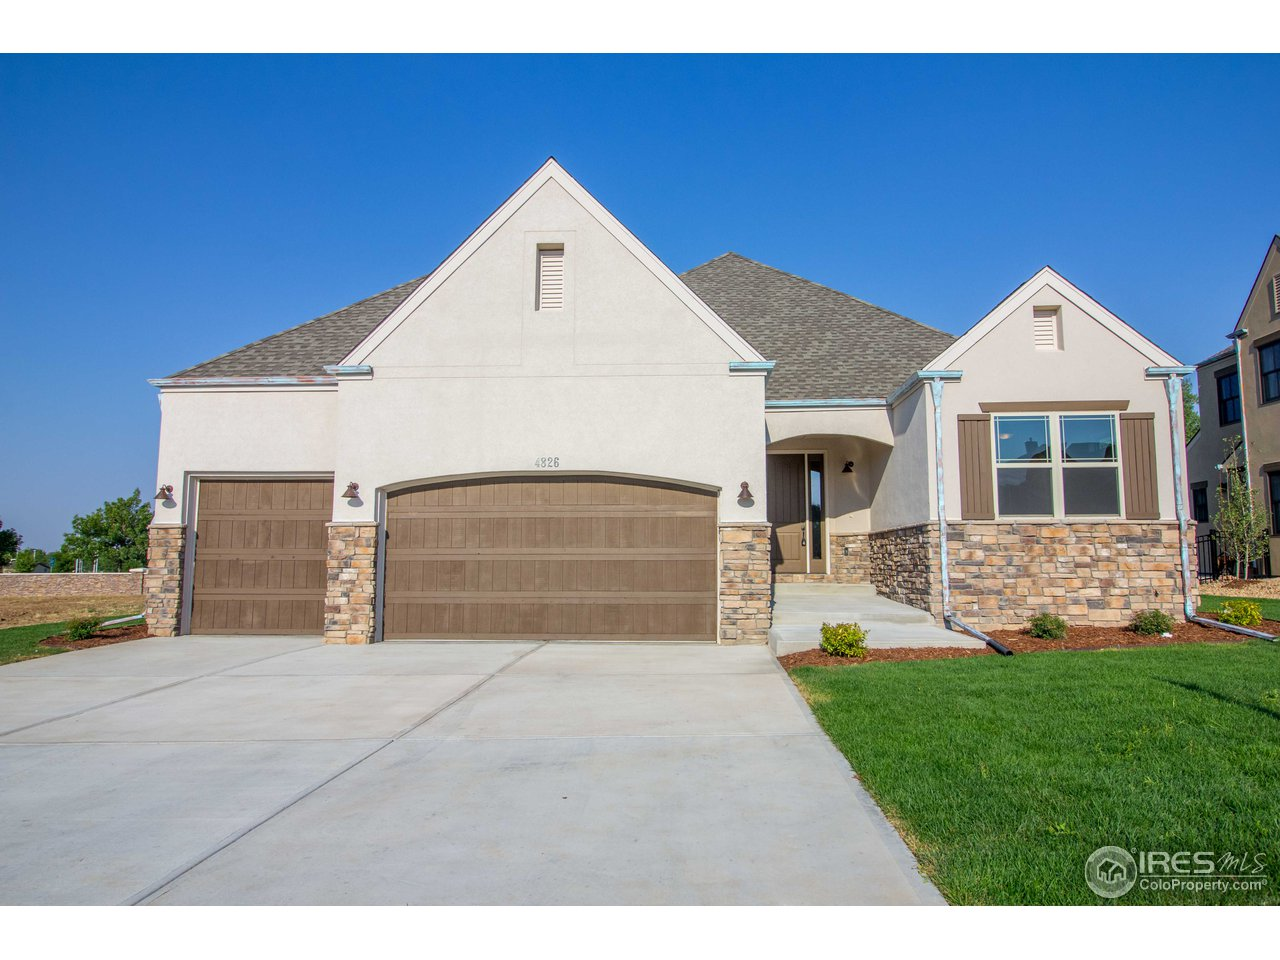 4826 Corsica Dr, Fort Collins CO 80526